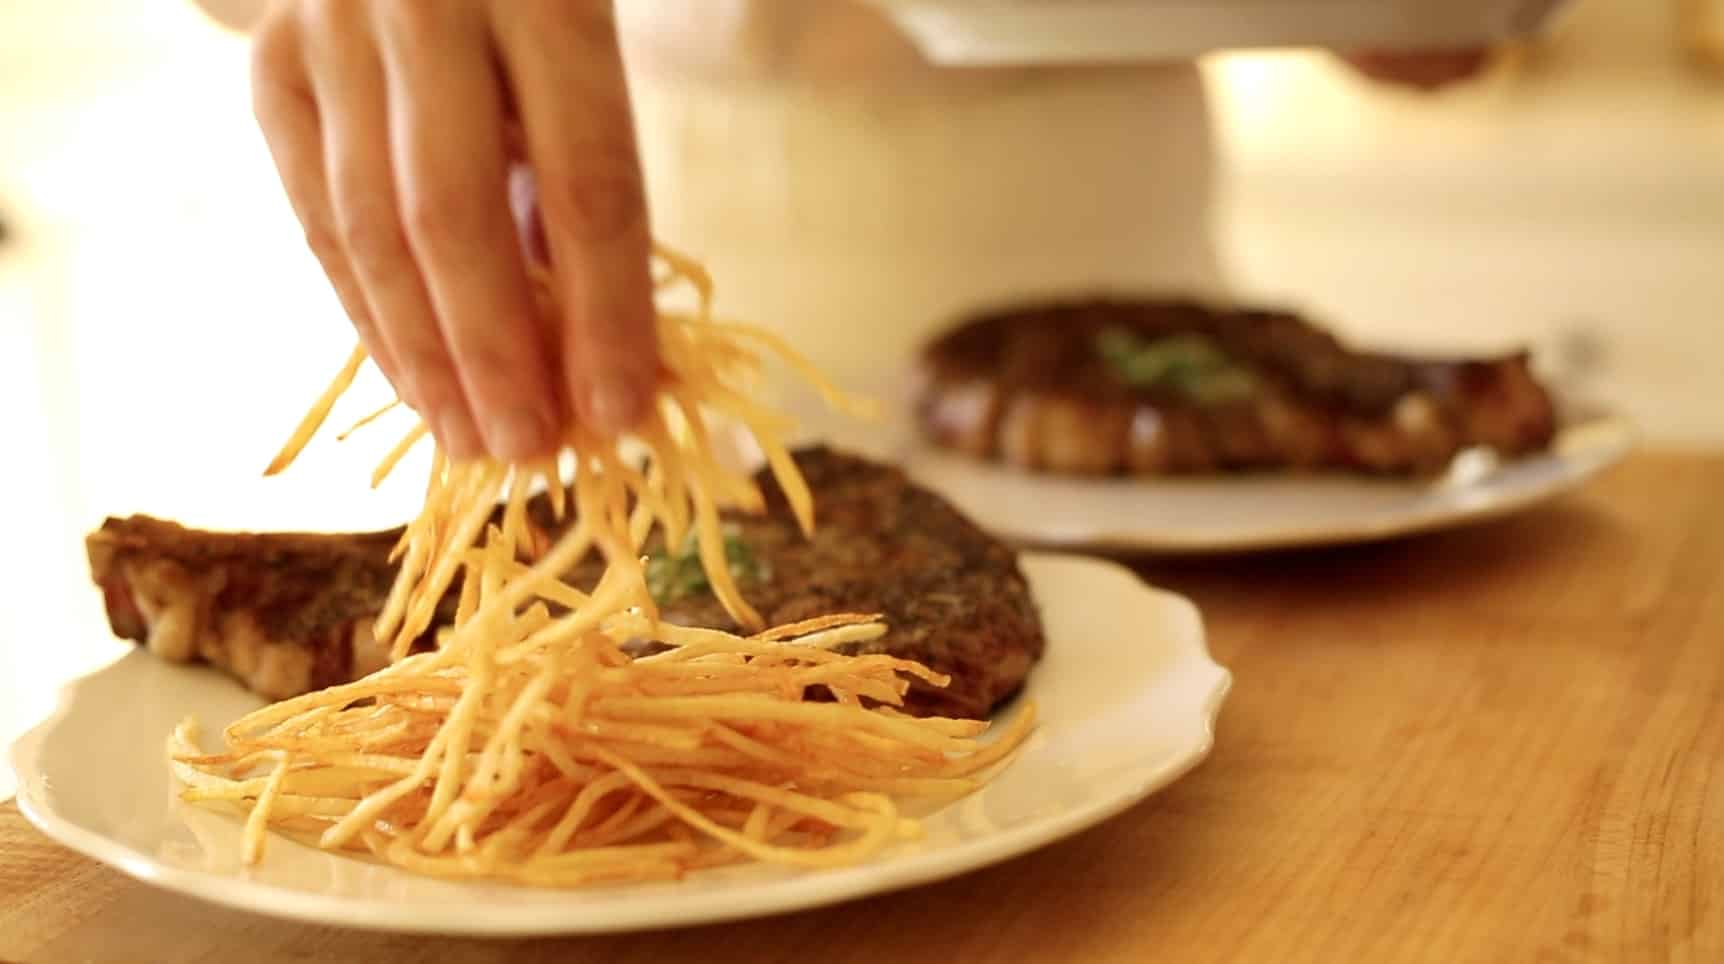 a hand placing a mound of fried french fries on a plate next to a rib-eye steak topped with herb butter